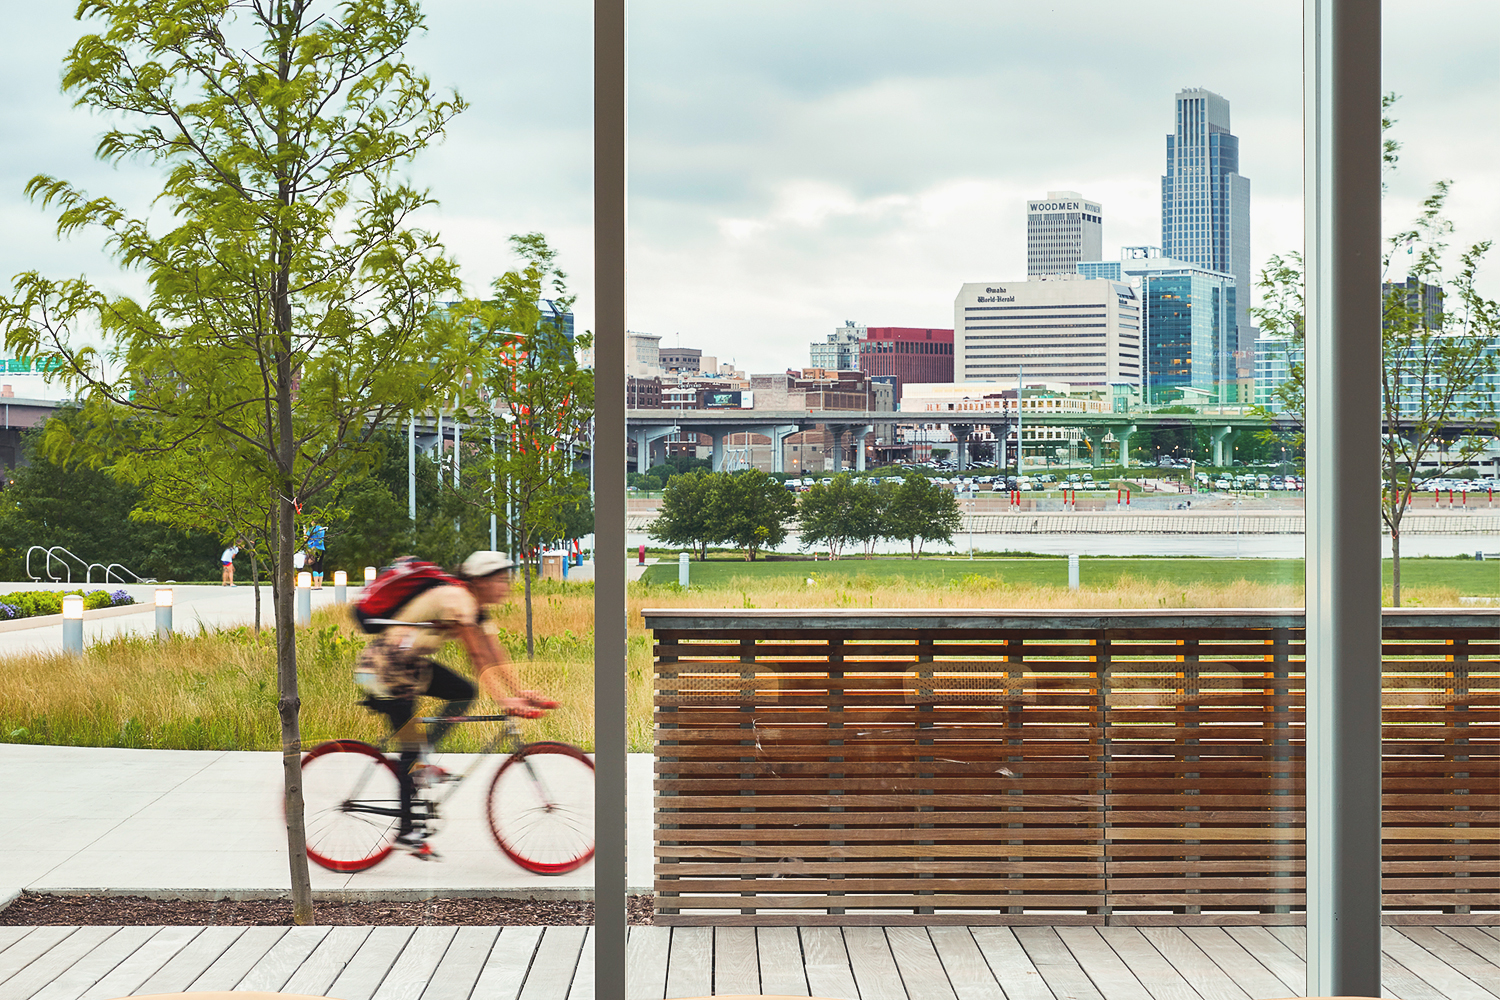 Urban design enables our city to thrive